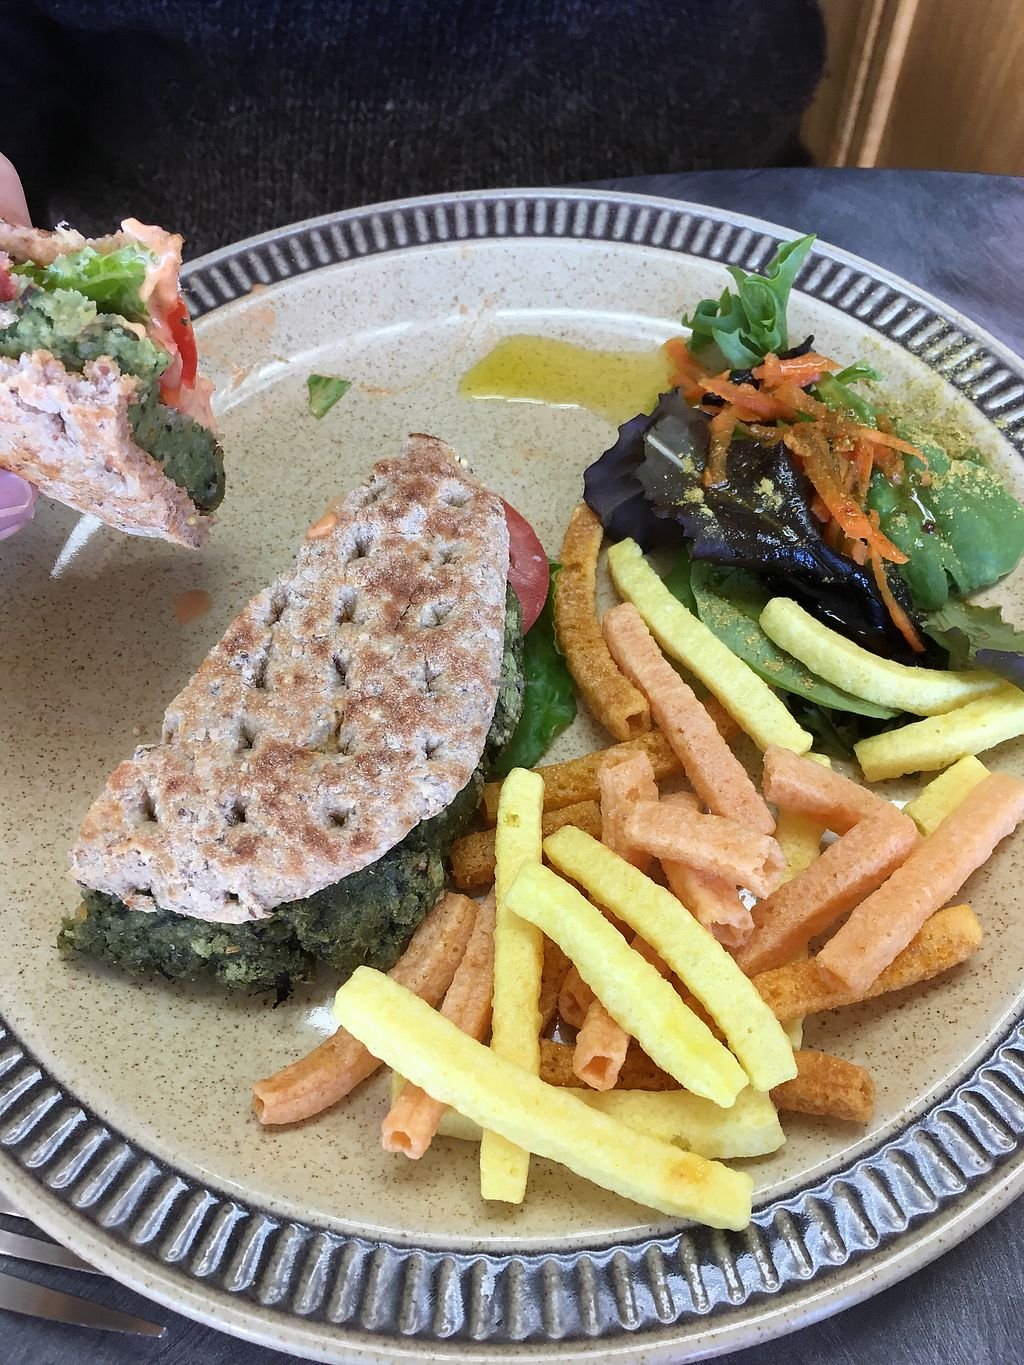 """Photo of Whole Life Natural Market  by <a href=""""/members/profile/Scholemillers"""">Scholemillers</a> <br/>Black bean burger <br/> October 11, 2017  - <a href='/contact/abuse/image/37181/314272'>Report</a>"""